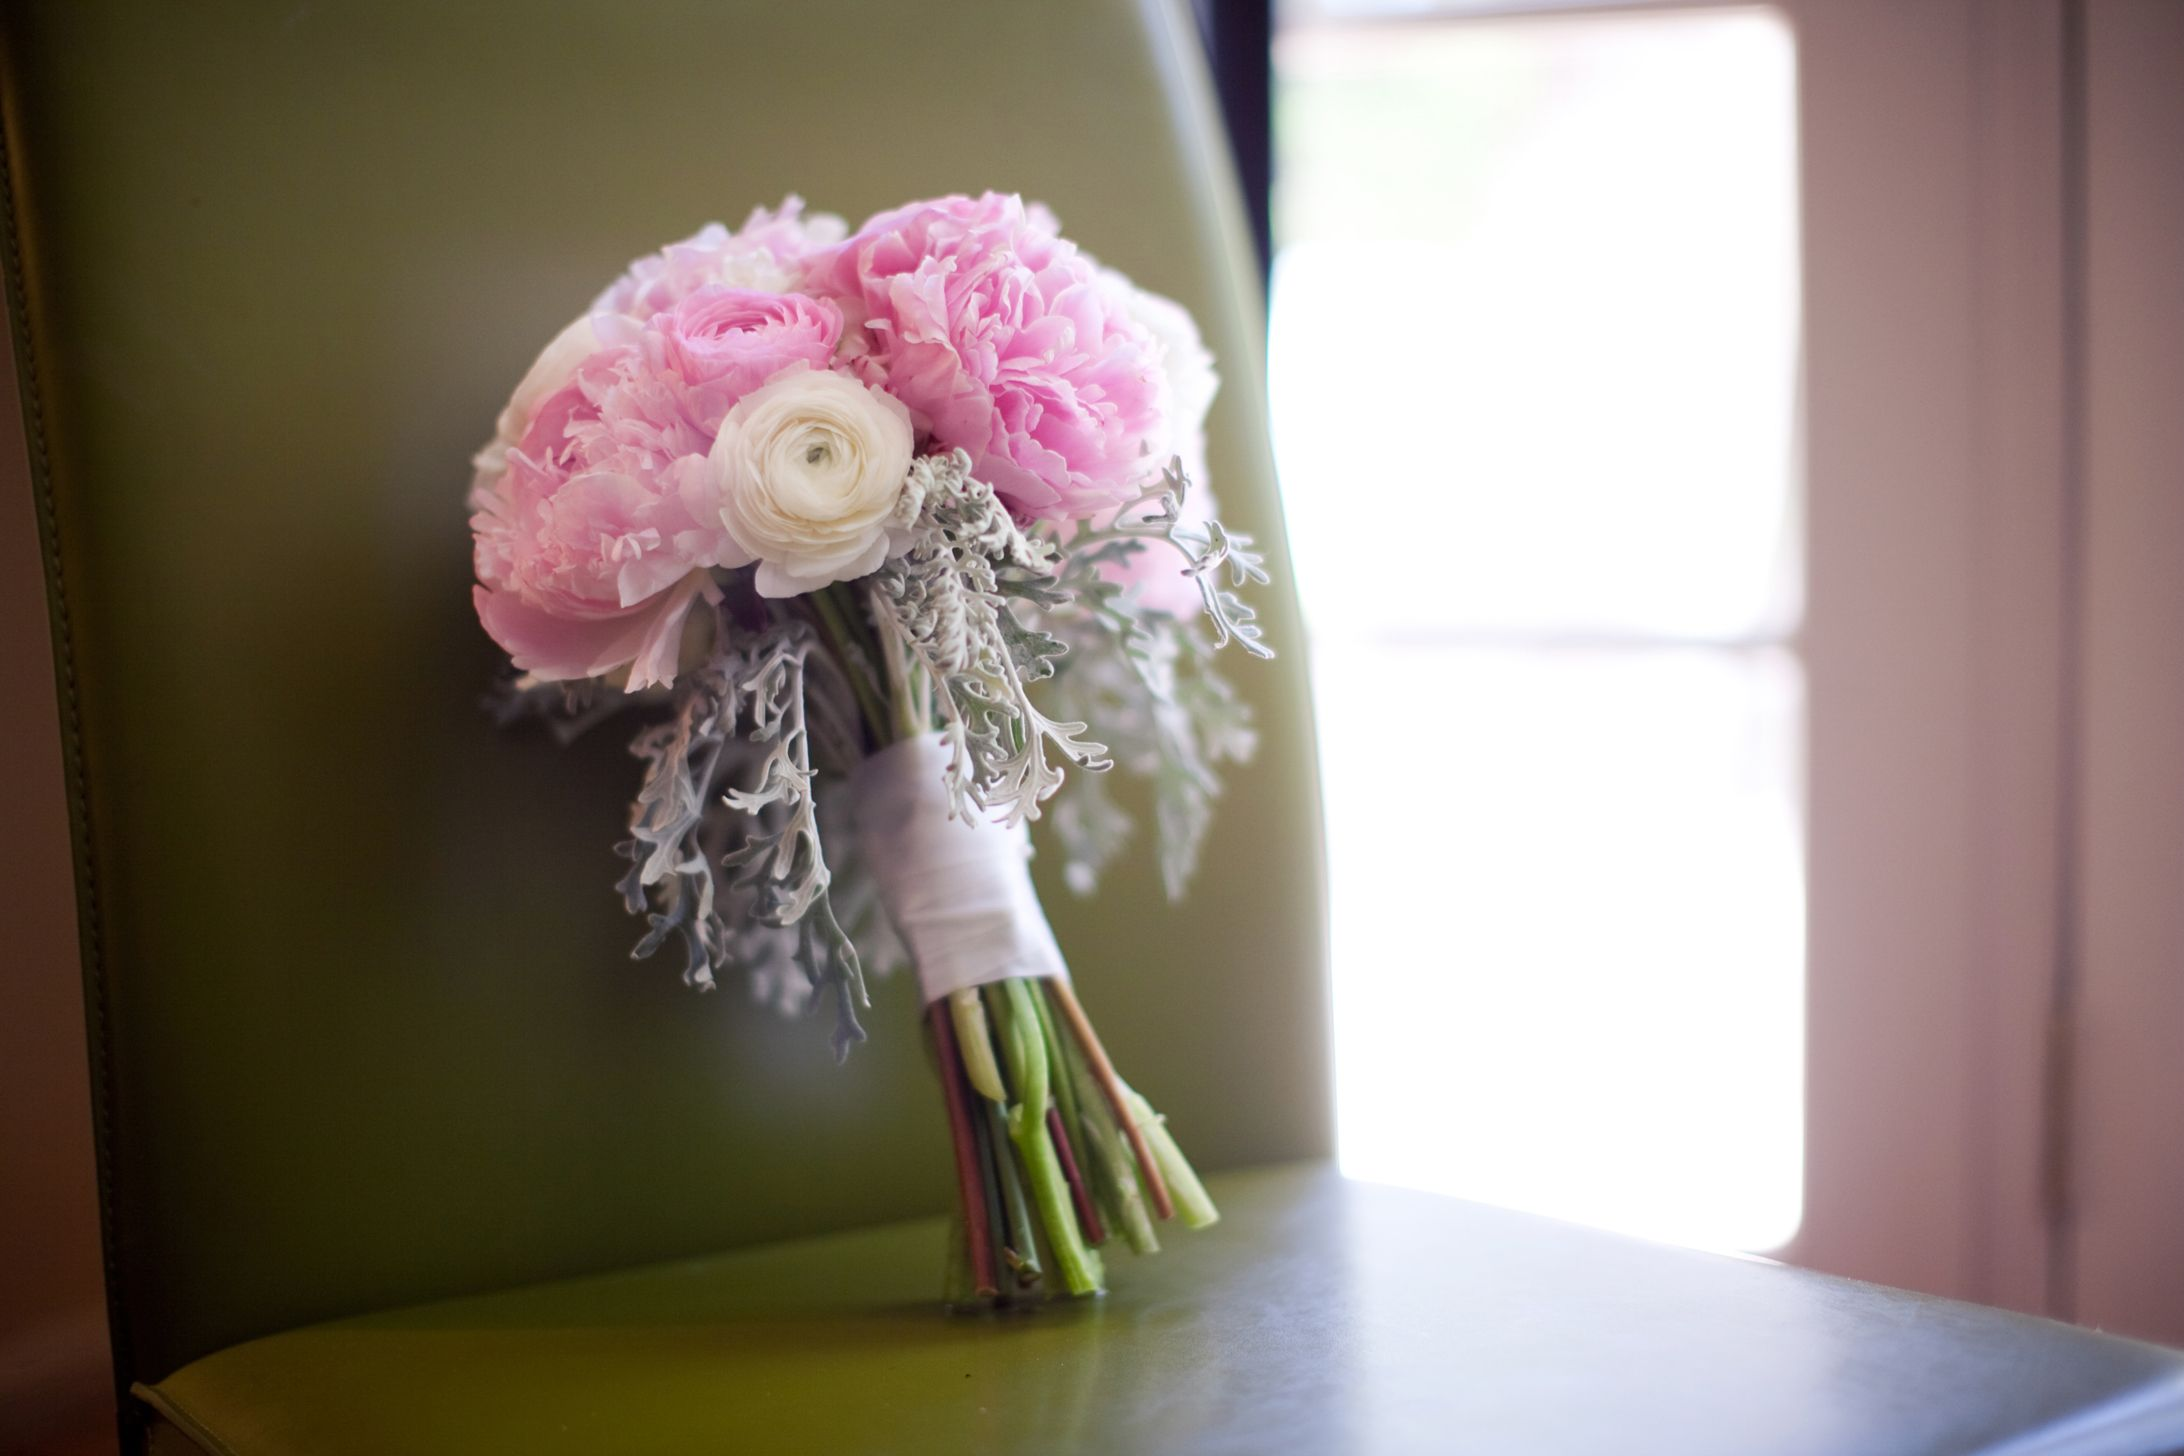 Pink peonies and ranunculus with a dusty miller collar. #FlowersPhoenix #PinkBridalBouquet